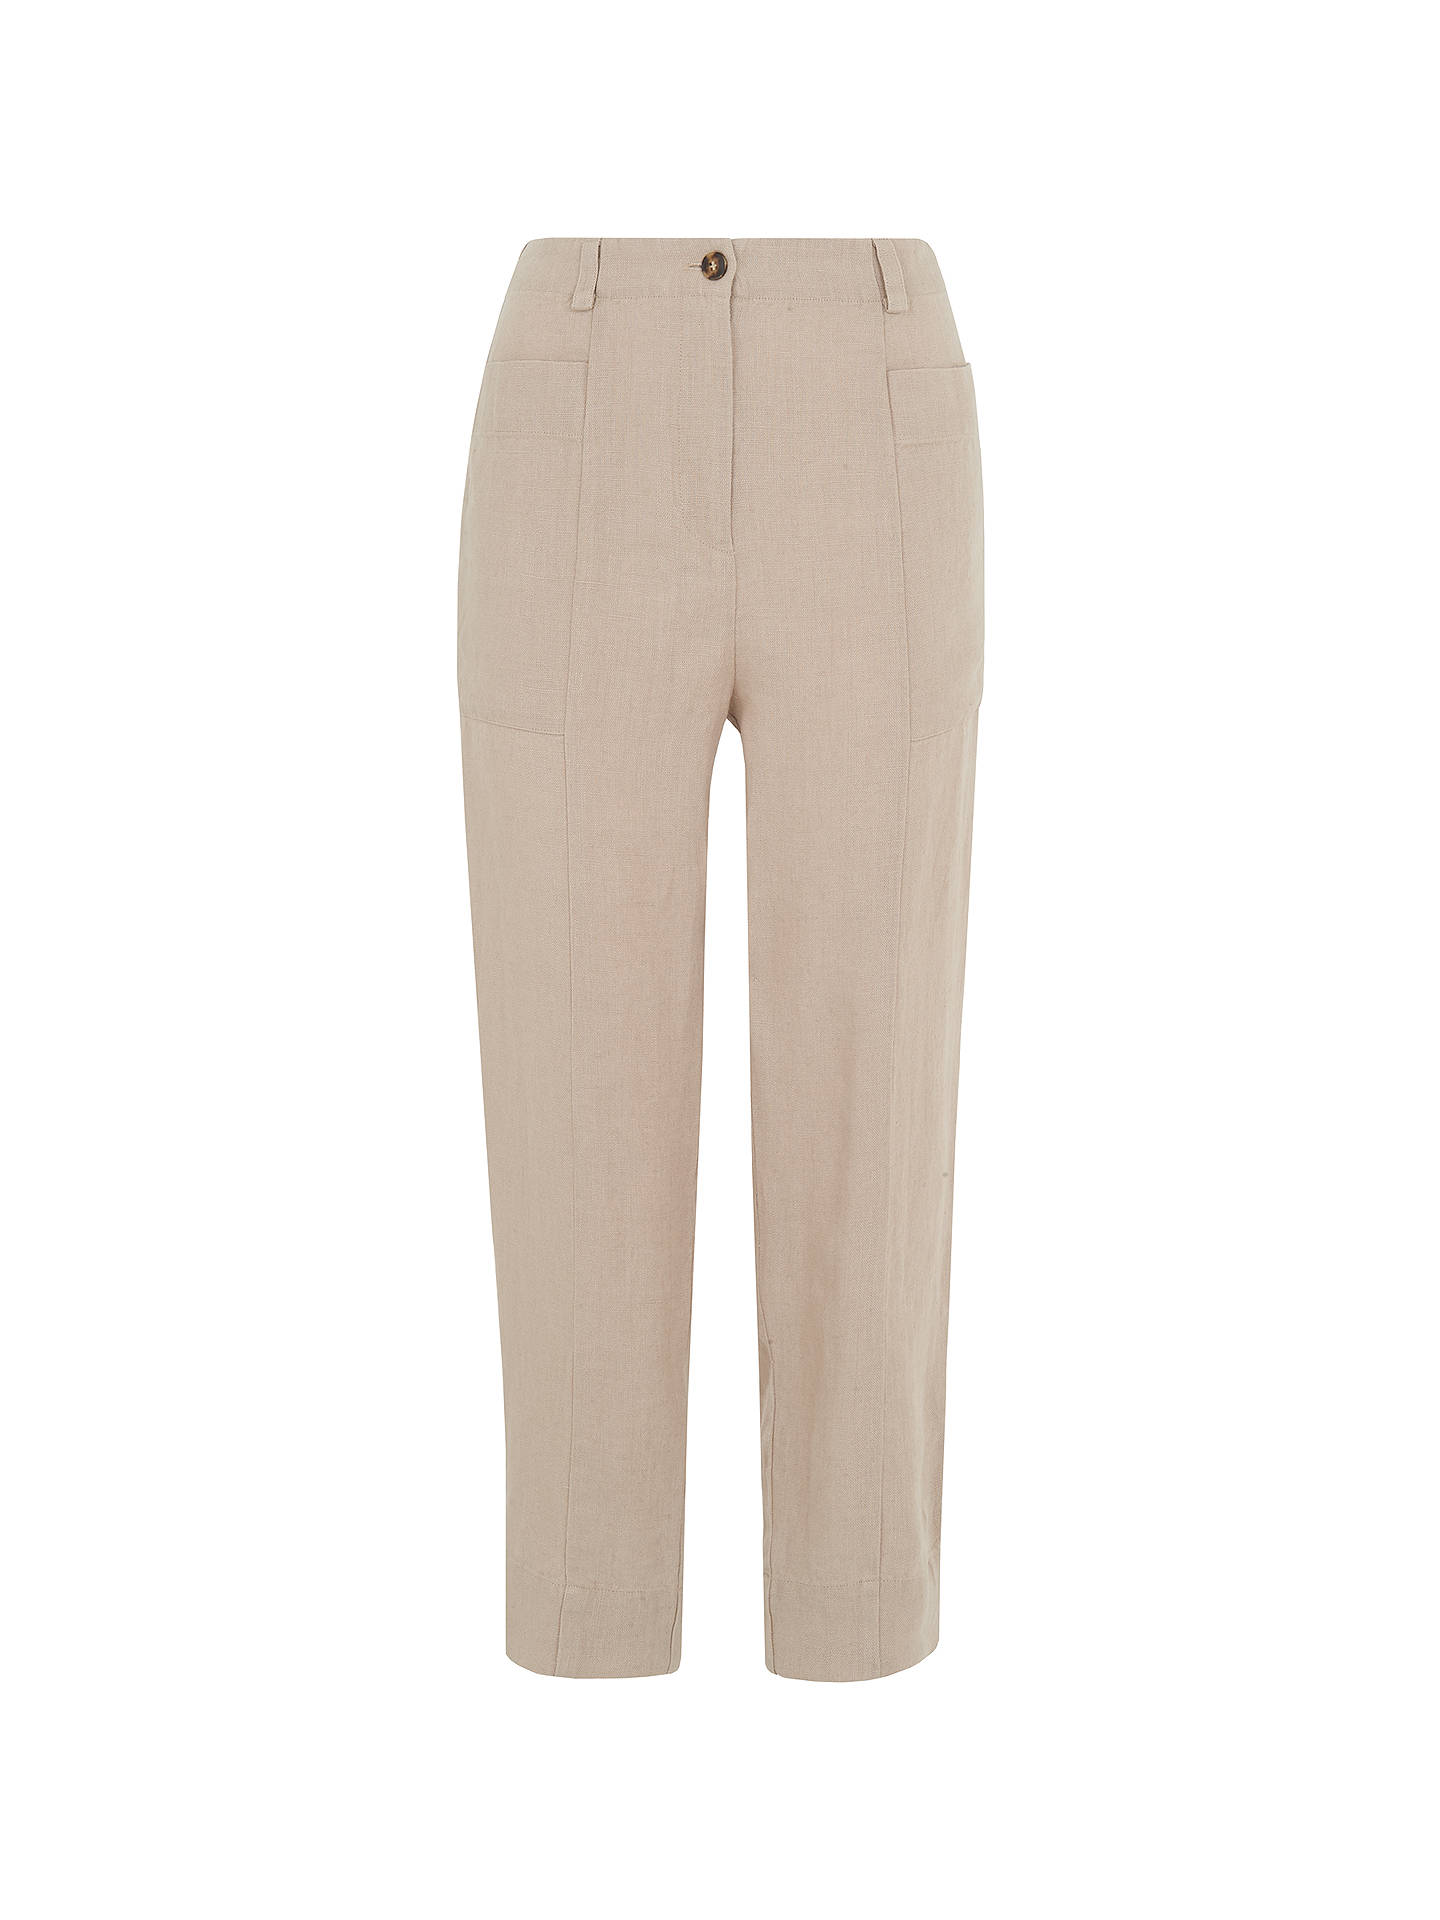 BuyWhistles Relaxed Linen Trousers, Neutral, 6 Online at johnlewis.com